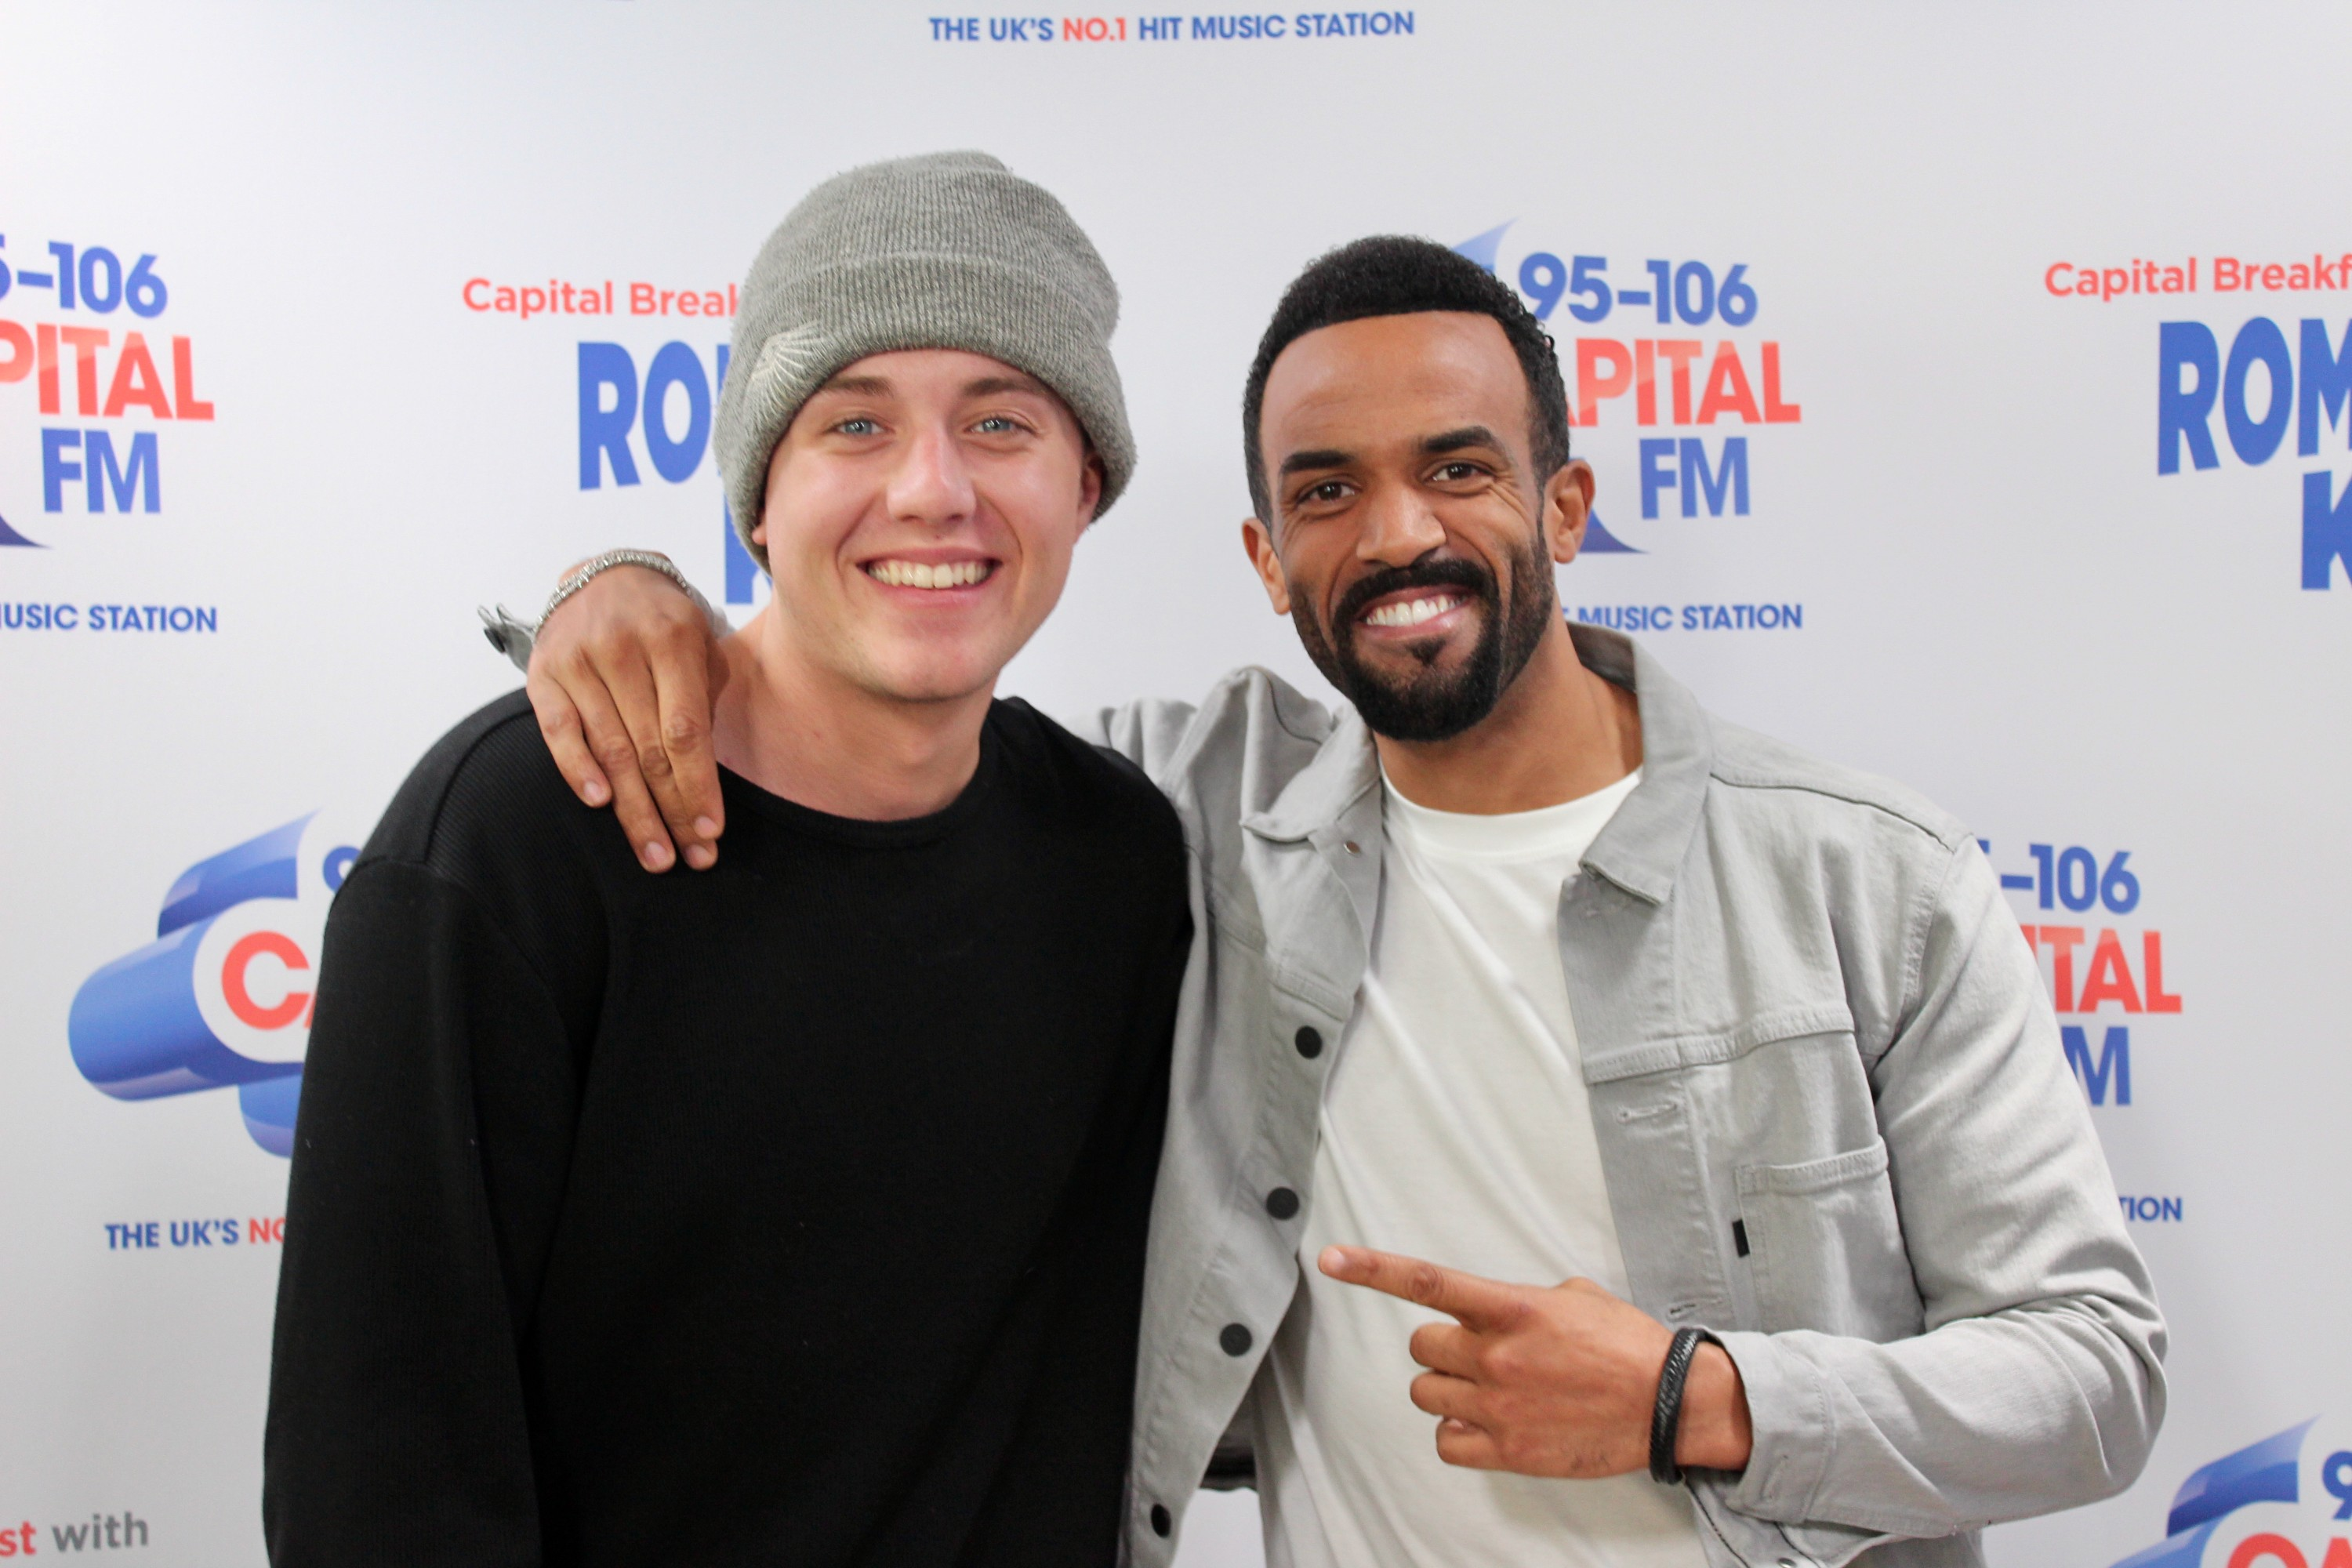 Craig David with Capital Breakfast with Roman Kemp